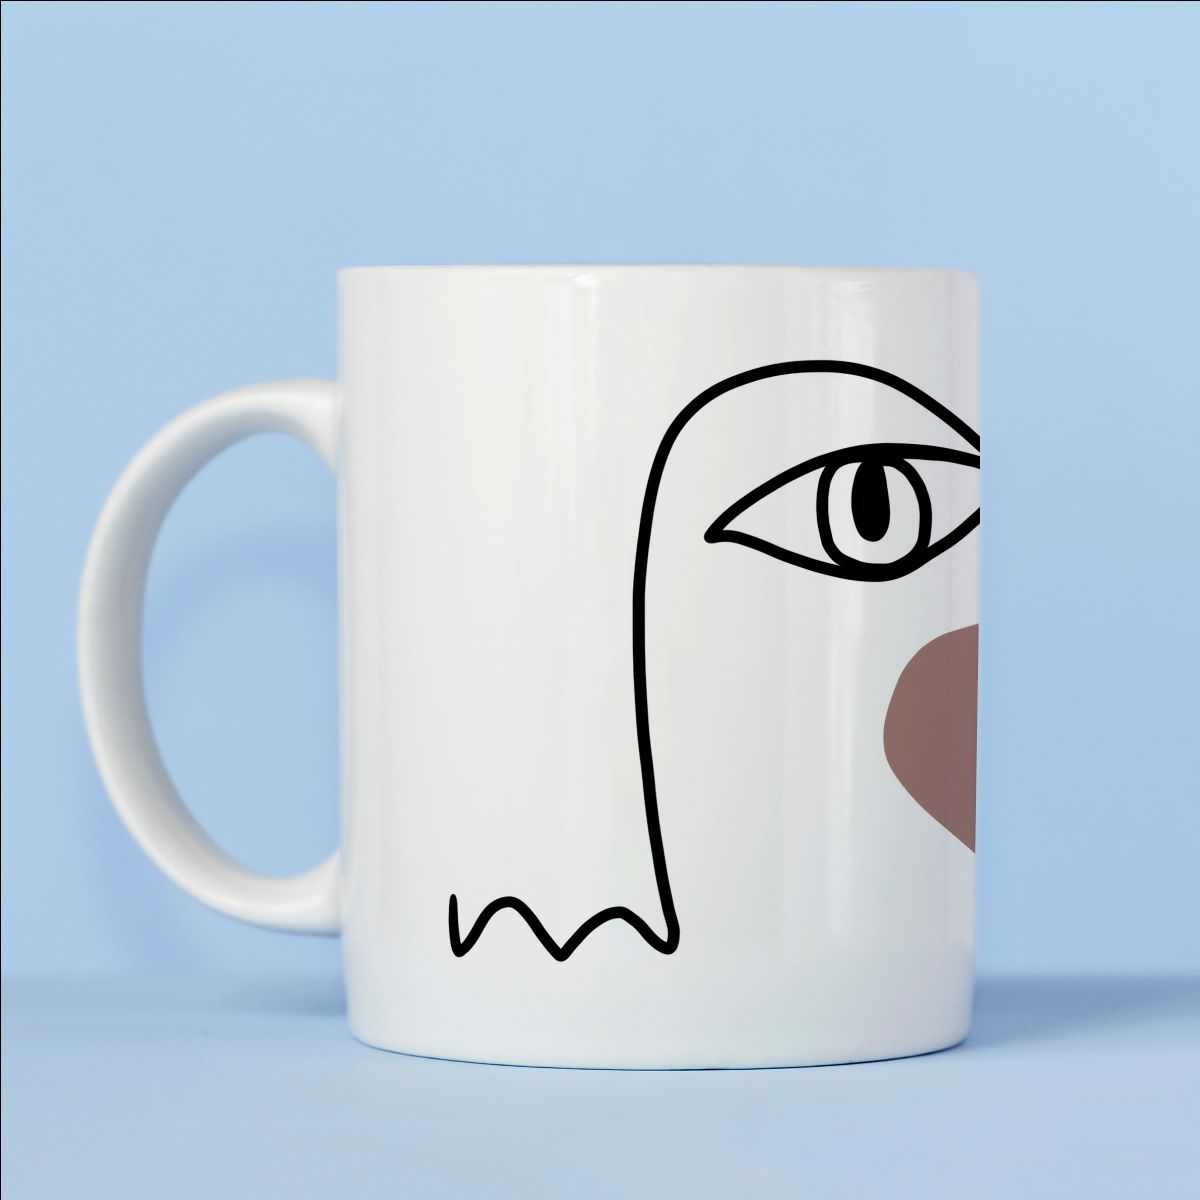 Designer coffee mugs